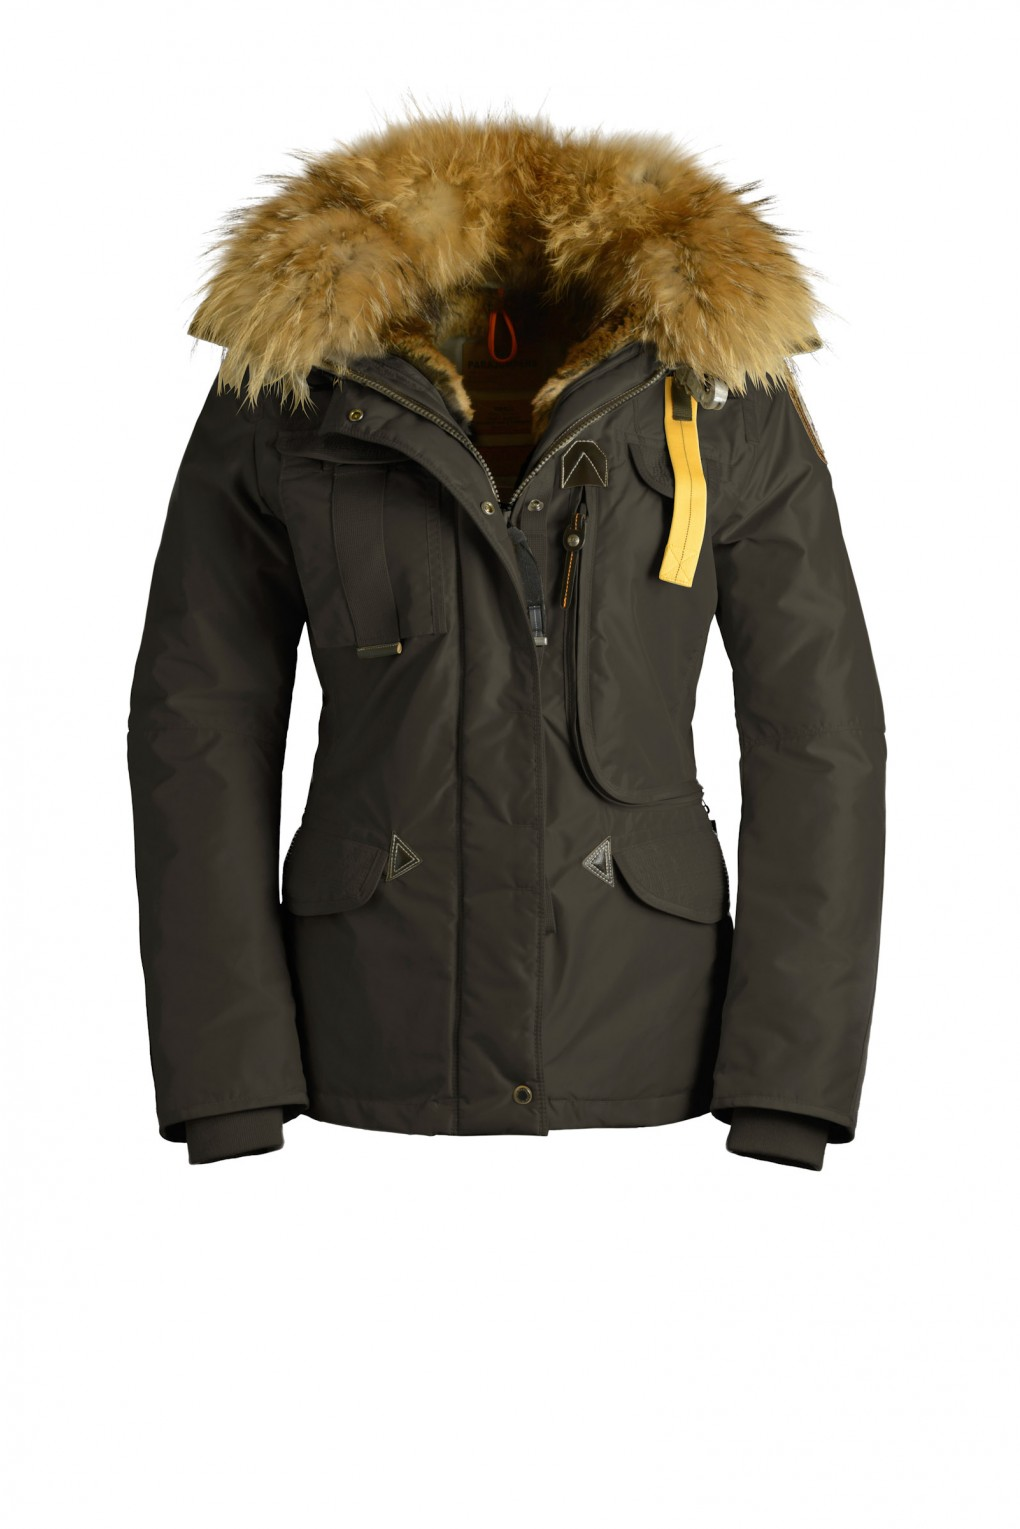 parajumpers DENALI woman outerwear Olive